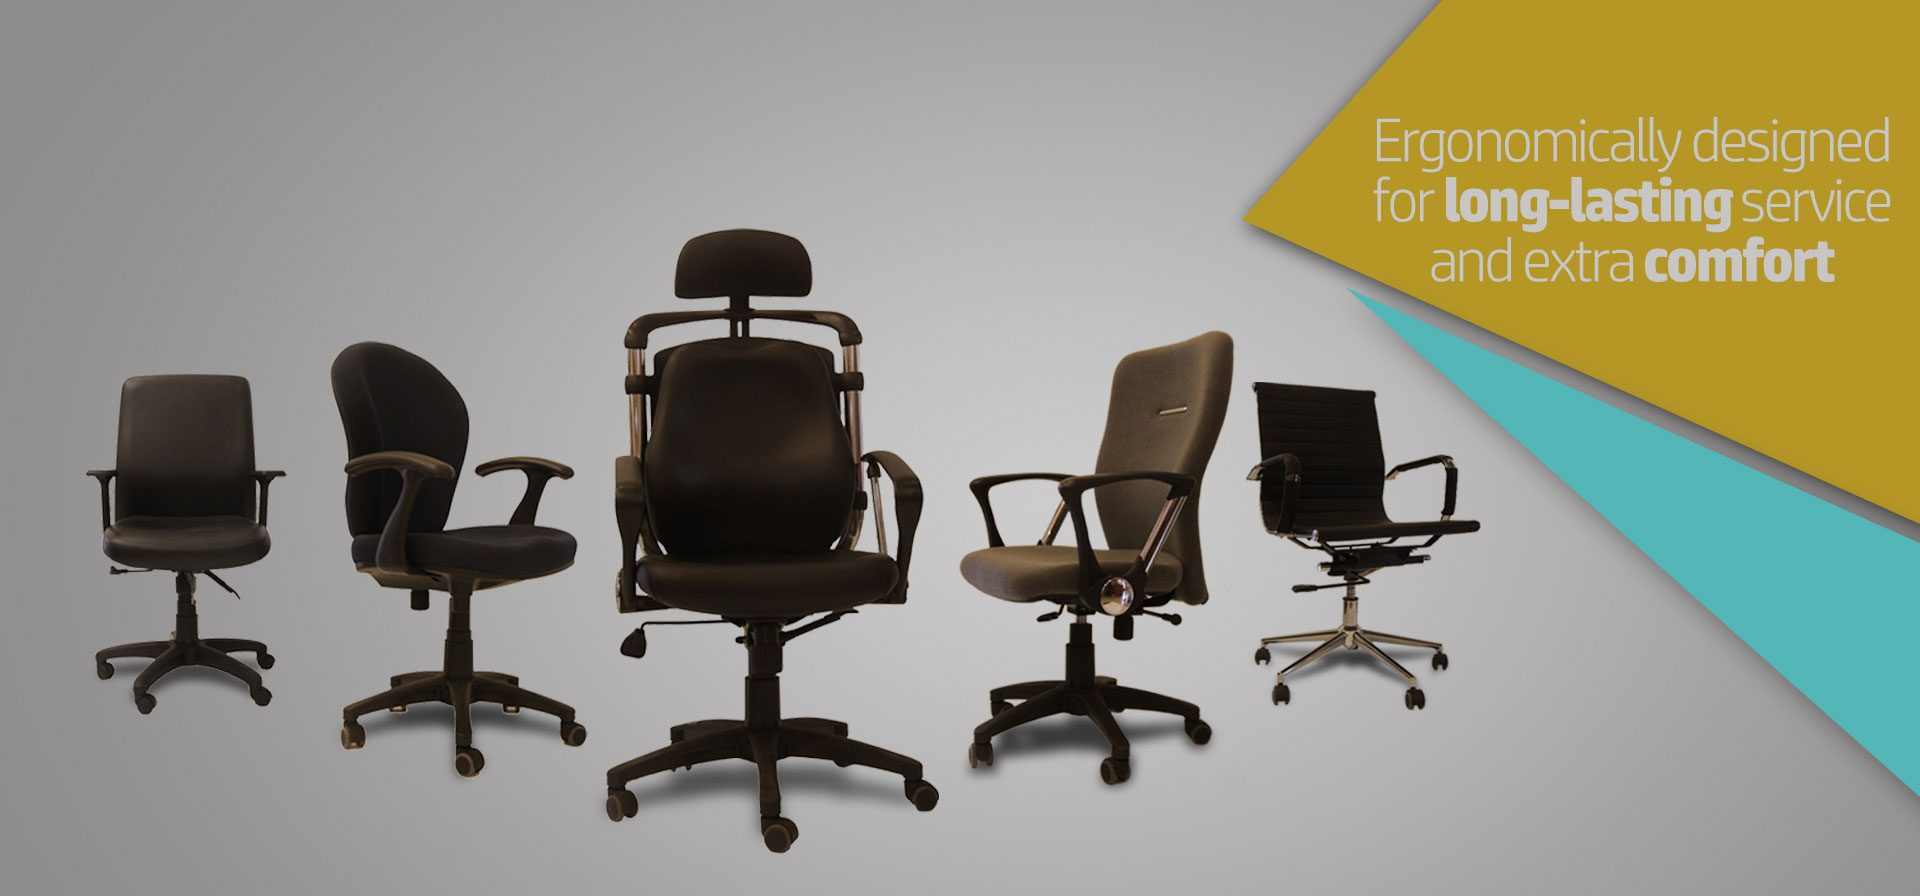 ergonomically designed for long-lasting service and extra comfort.